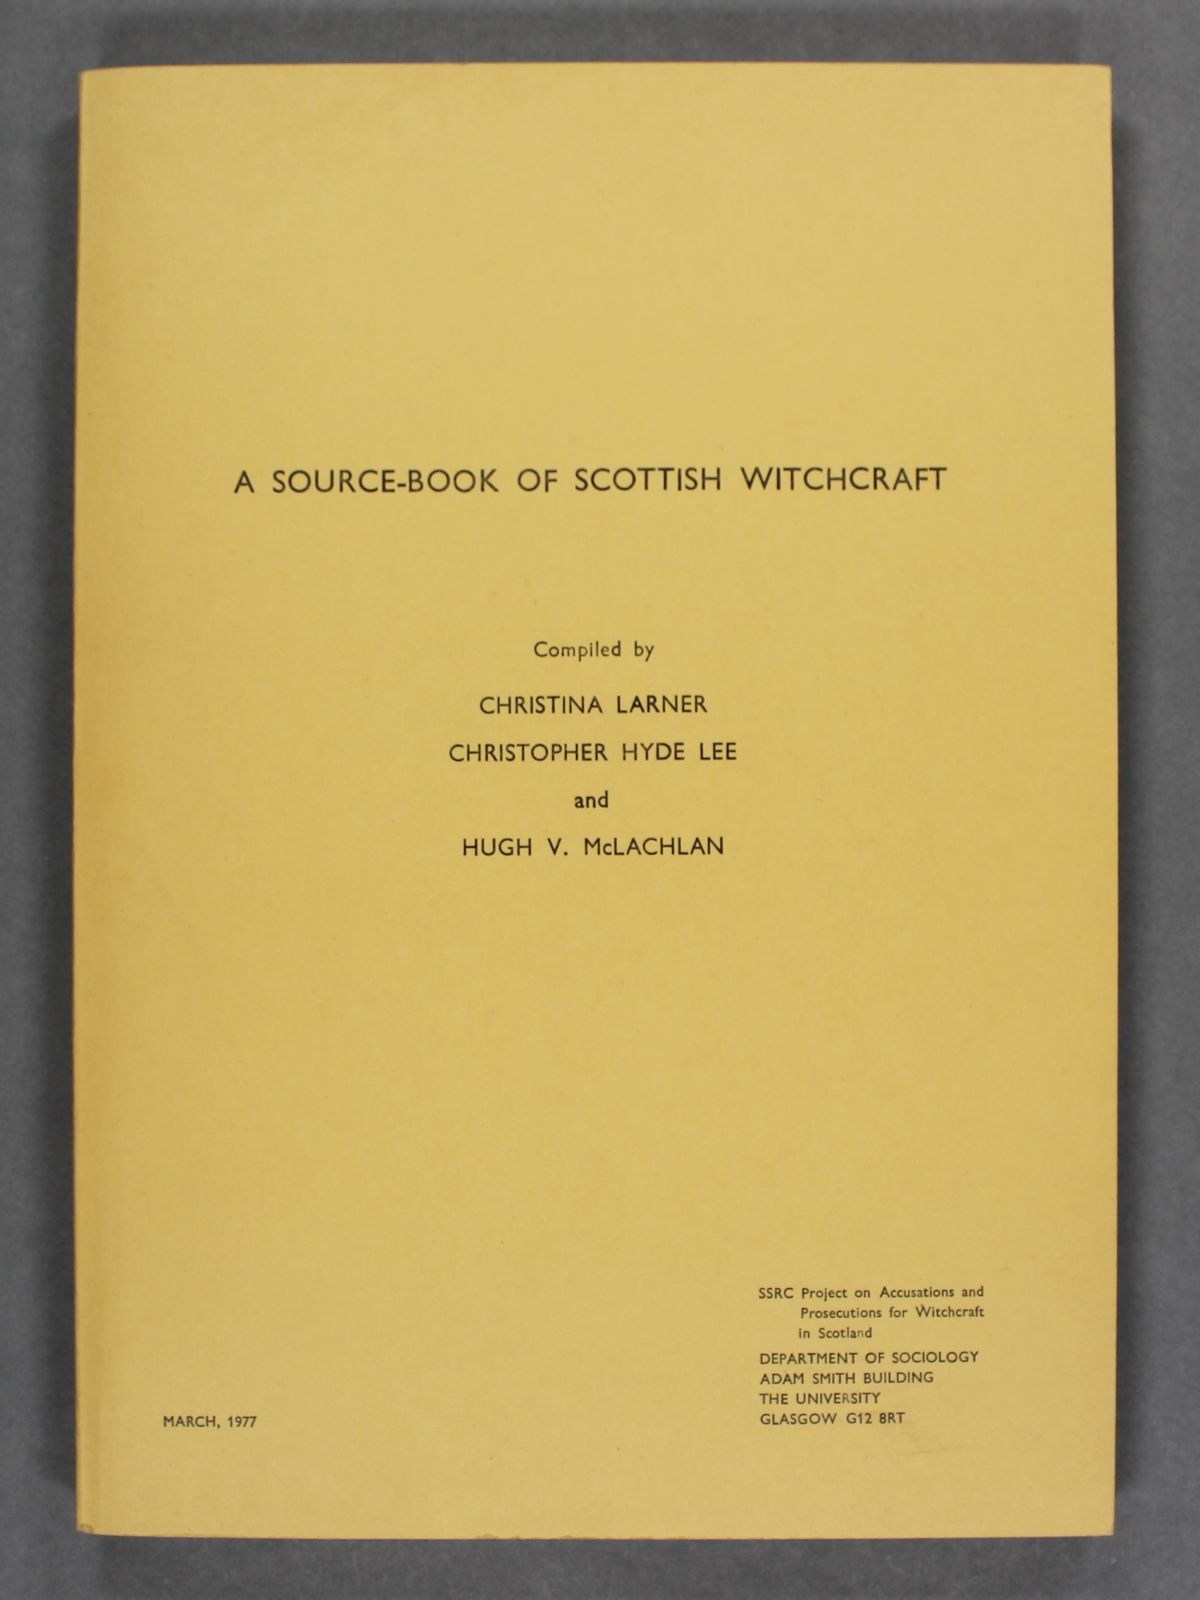 A yellow book with black text on the cover. March, 1977, is printed in the bottom left corner.